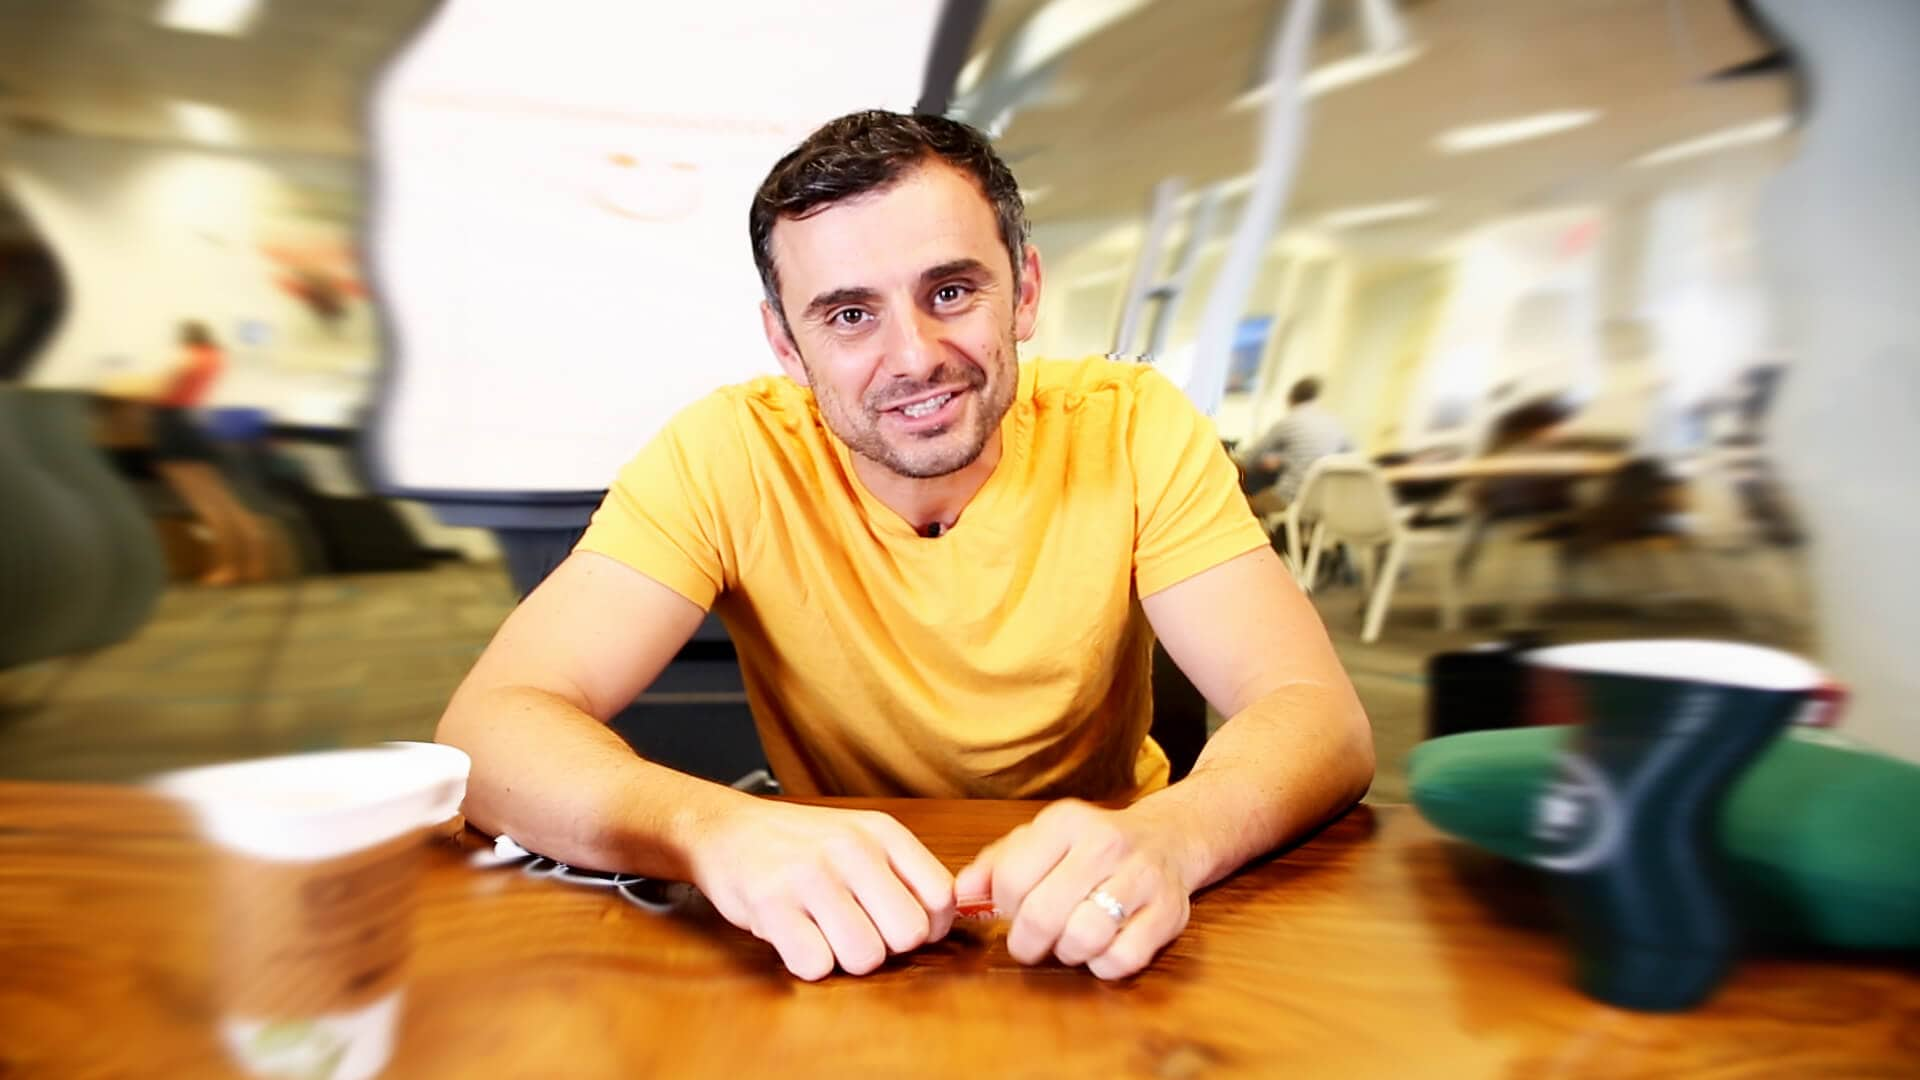 #AskGaryVee Episode 126